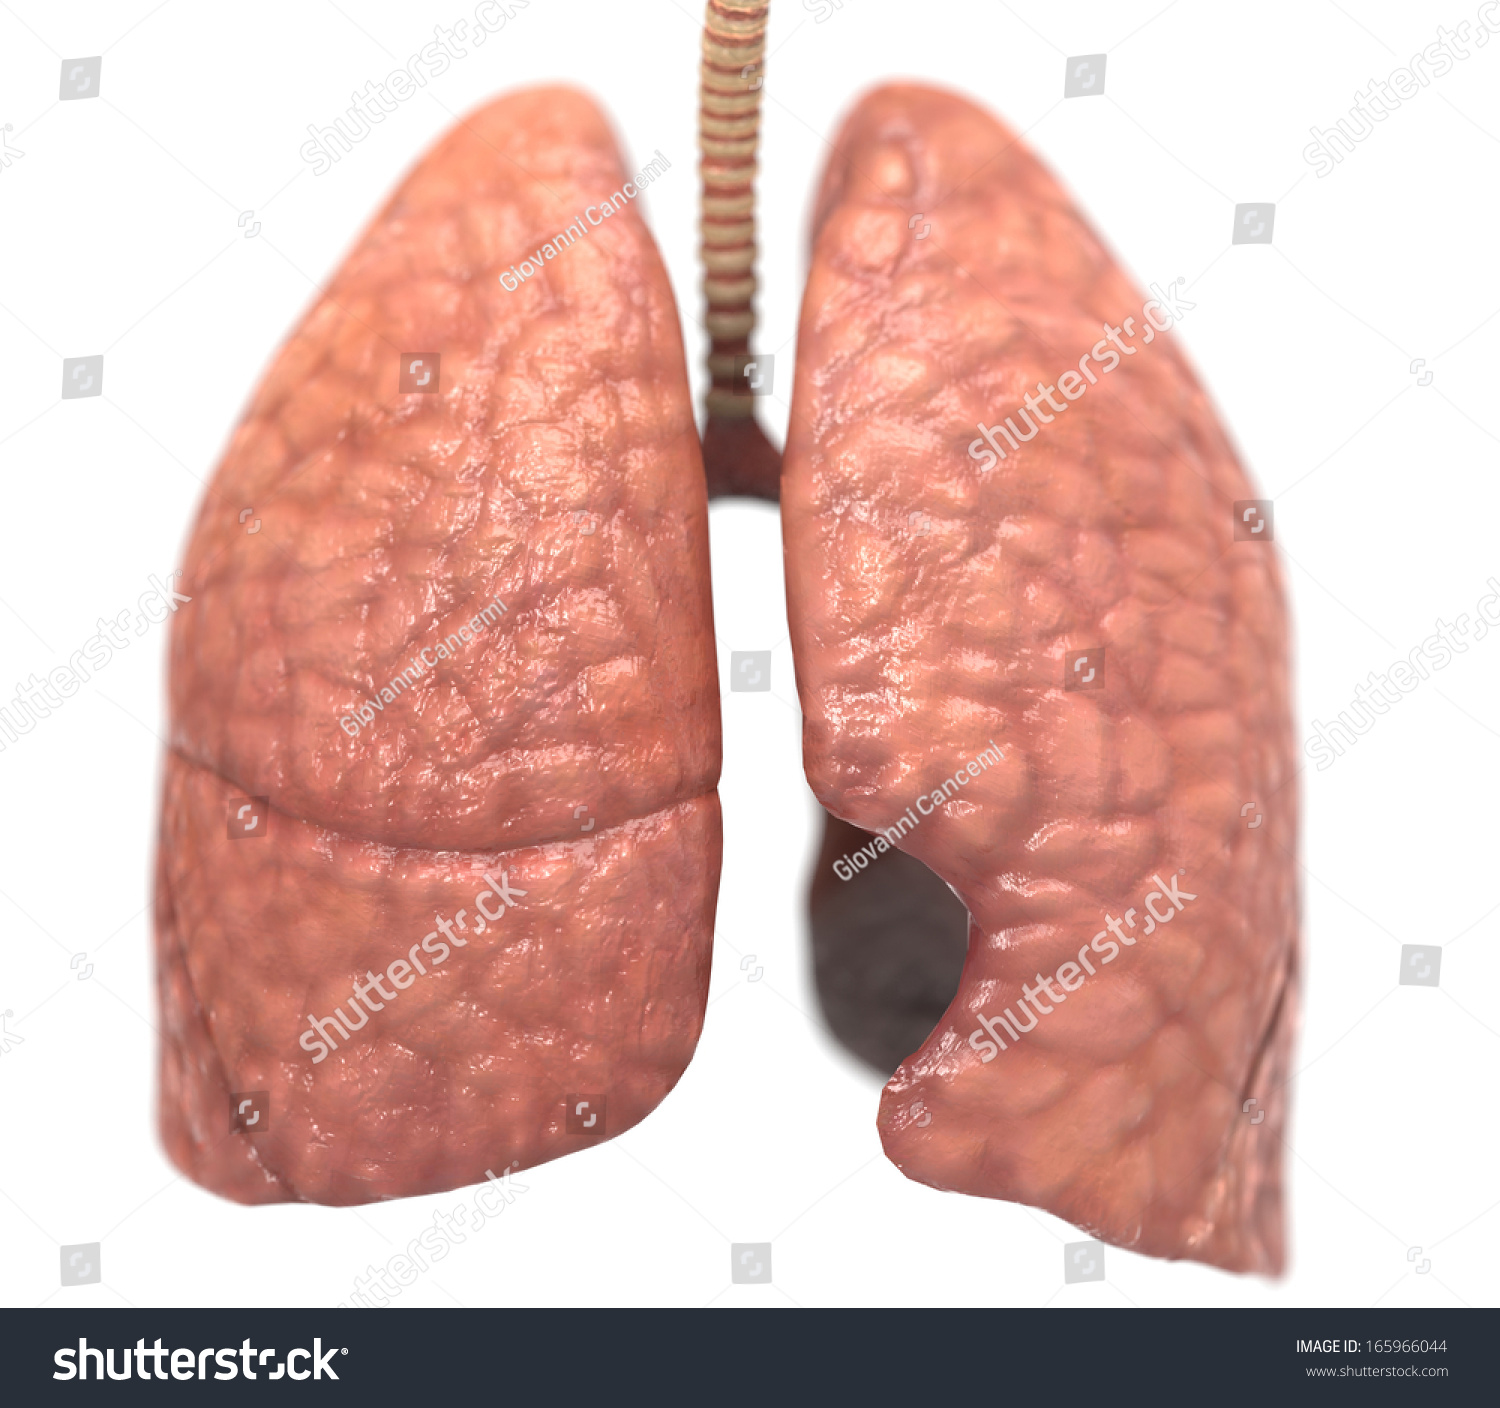 Healthy Lungs Stock Illustration 165966044 - Shutterstock